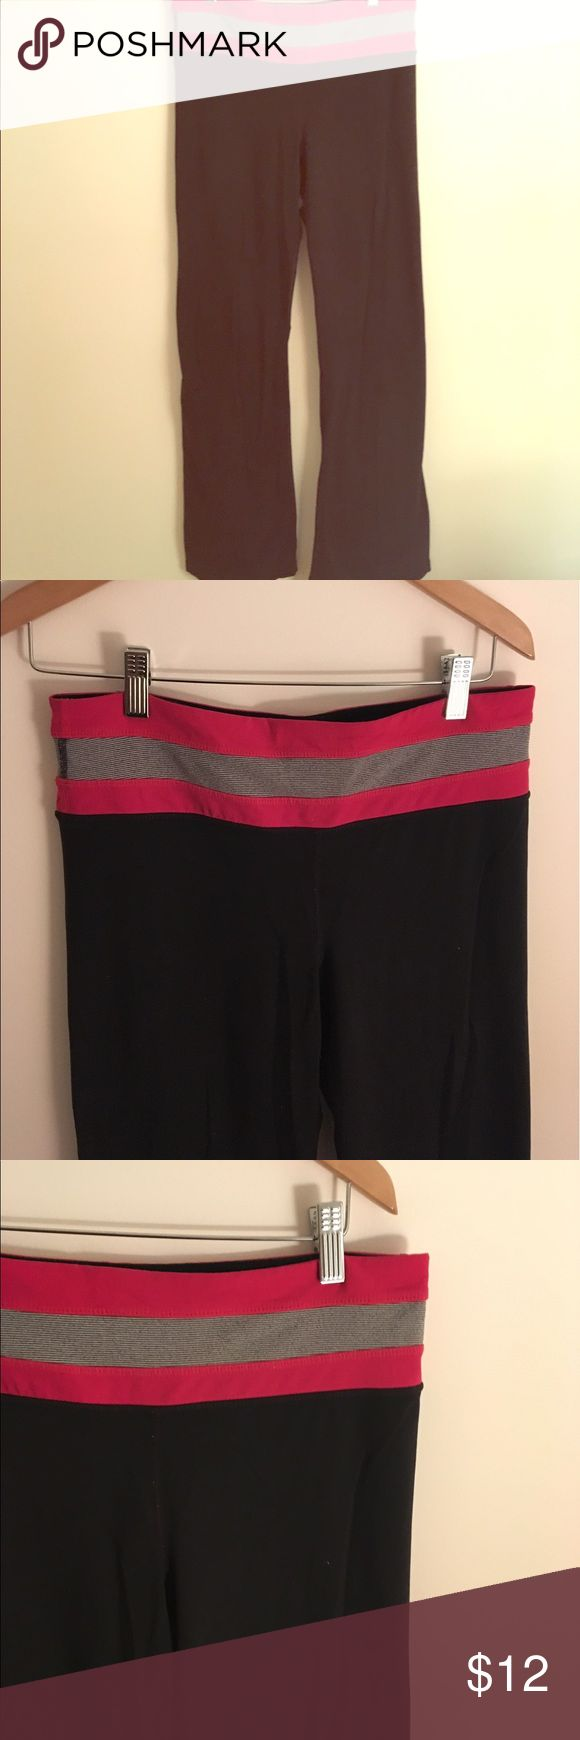 ⭐️Pink, Gray and Black Extra TALL Yoga Pants⭐️ ⭐️Pink, Gray and Black Extra TALL Yoga Pants⭐️ very Long! Excellent Condition! Size Medium. Small Pocket in the side to hold phone/iPod. Great for working out/doing yoga. All sales final. Next day shipping. 100% Spandex Pants Boot Cut & Flare